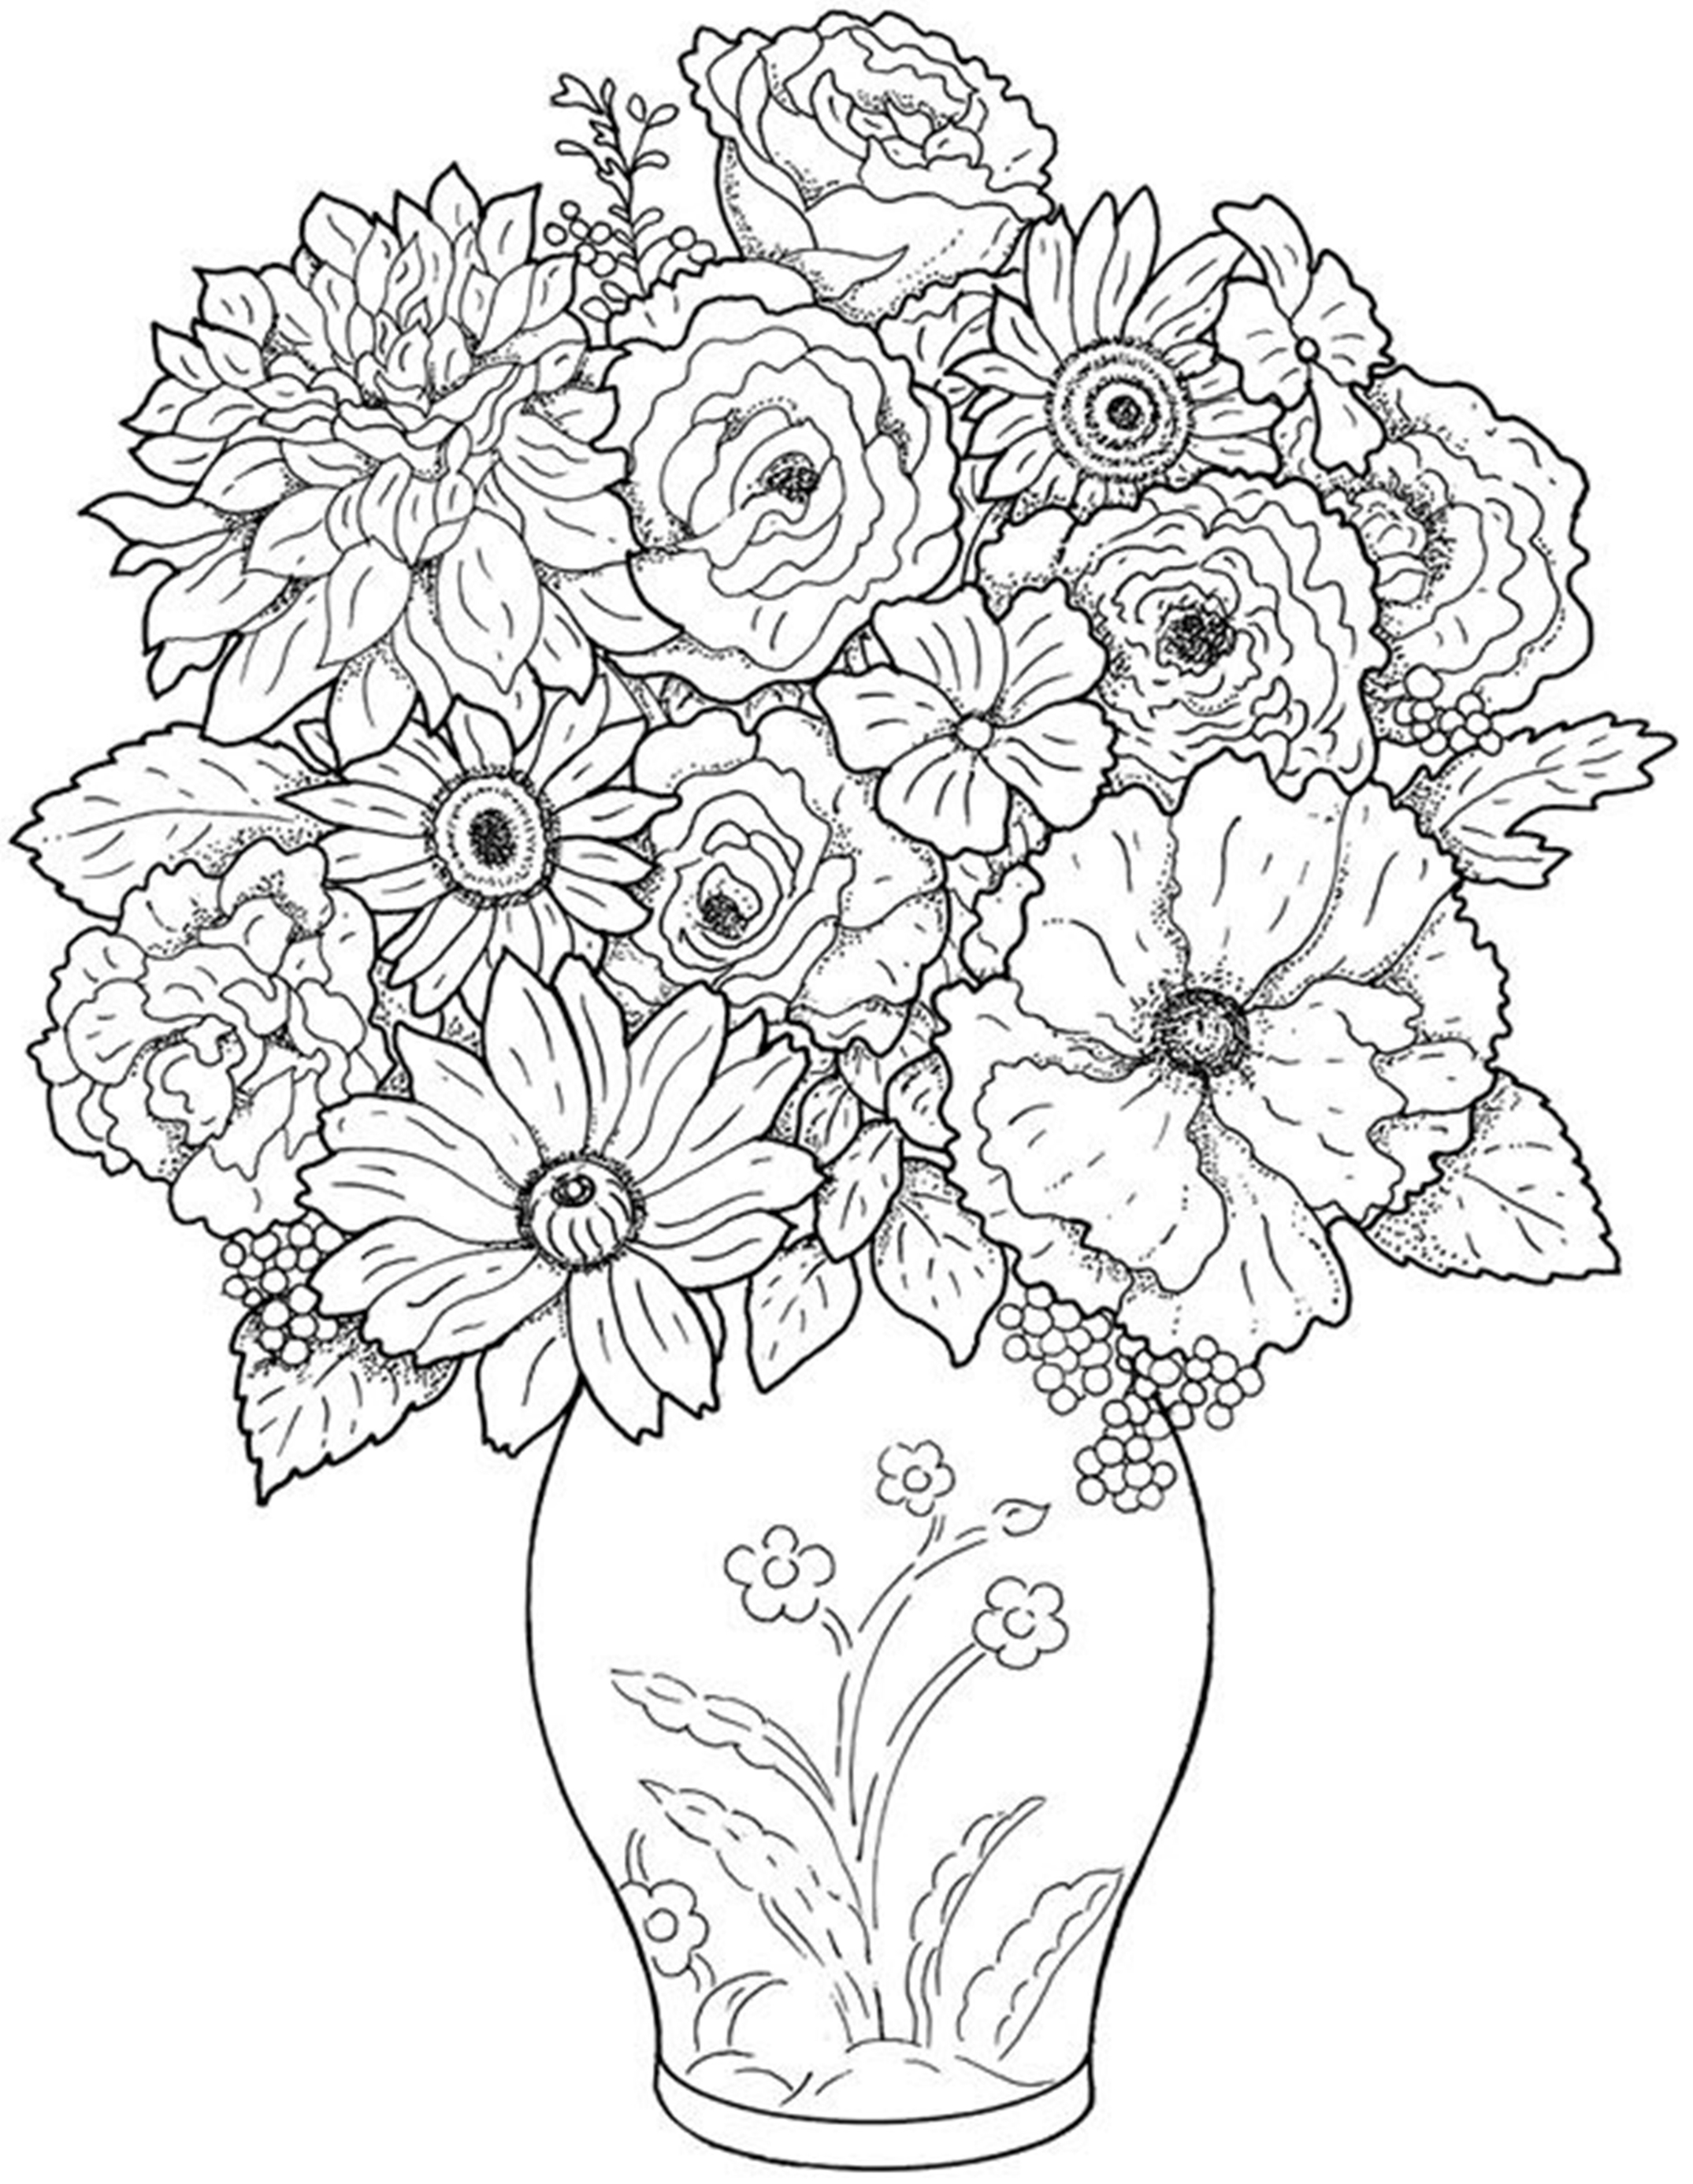 flowers coloring sheet flower coloring pages coloring flowers sheet